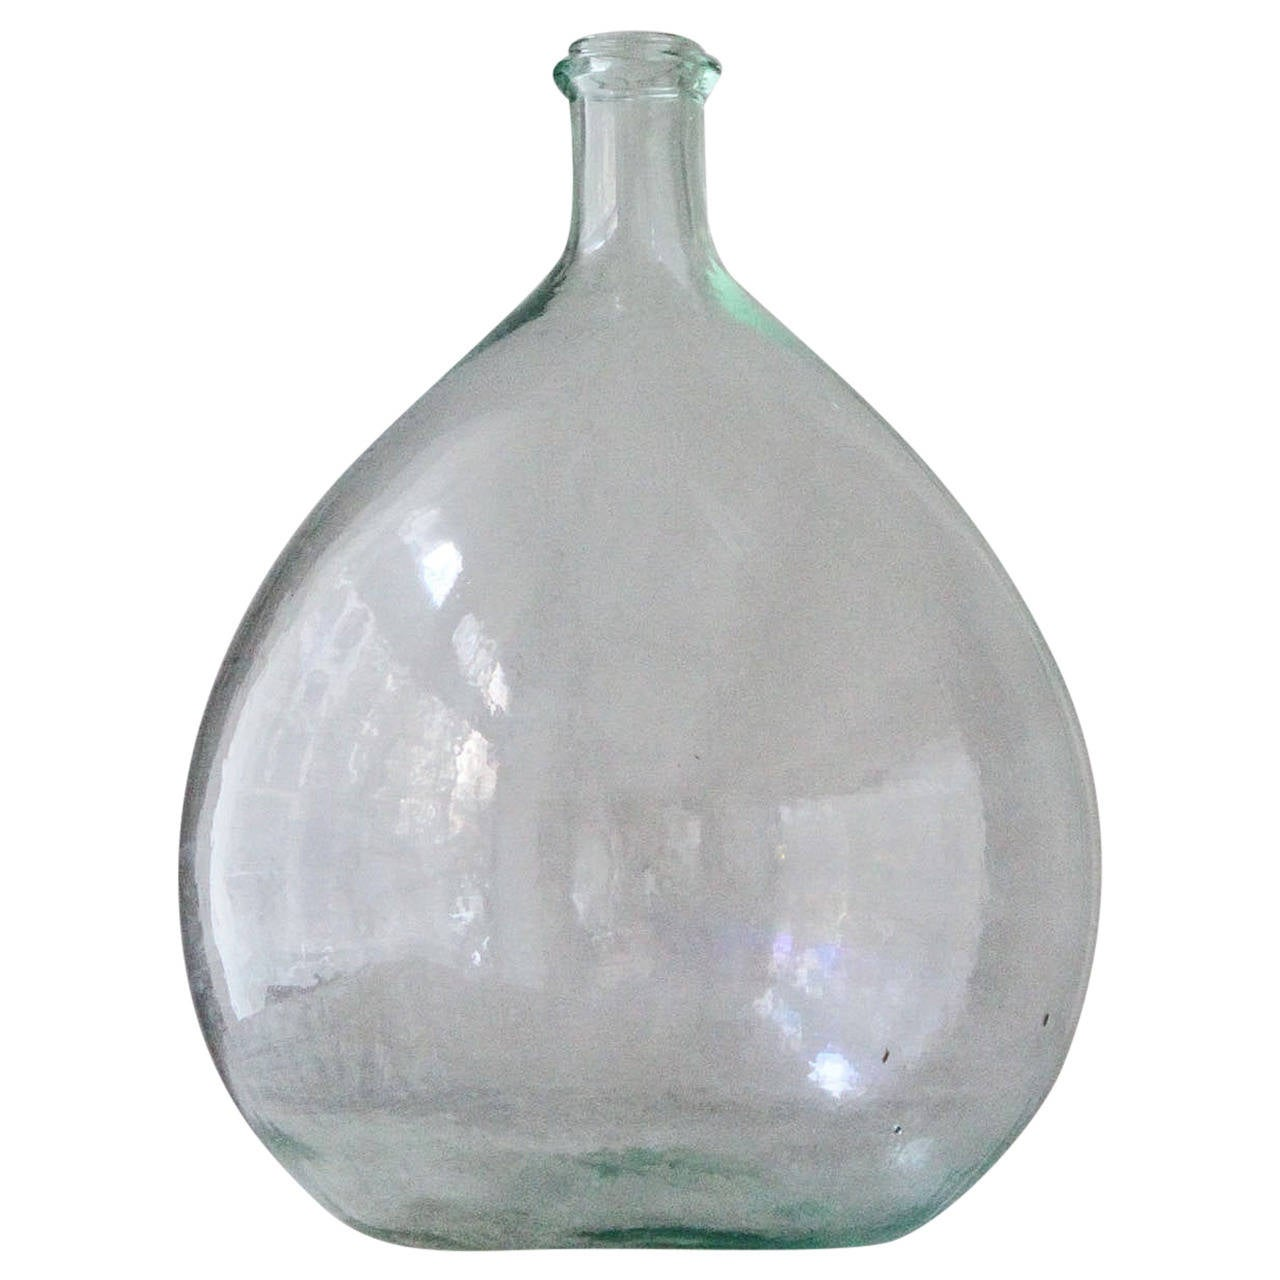 3 Liter Clear Glass Jug, 38mm (without handle) See what your